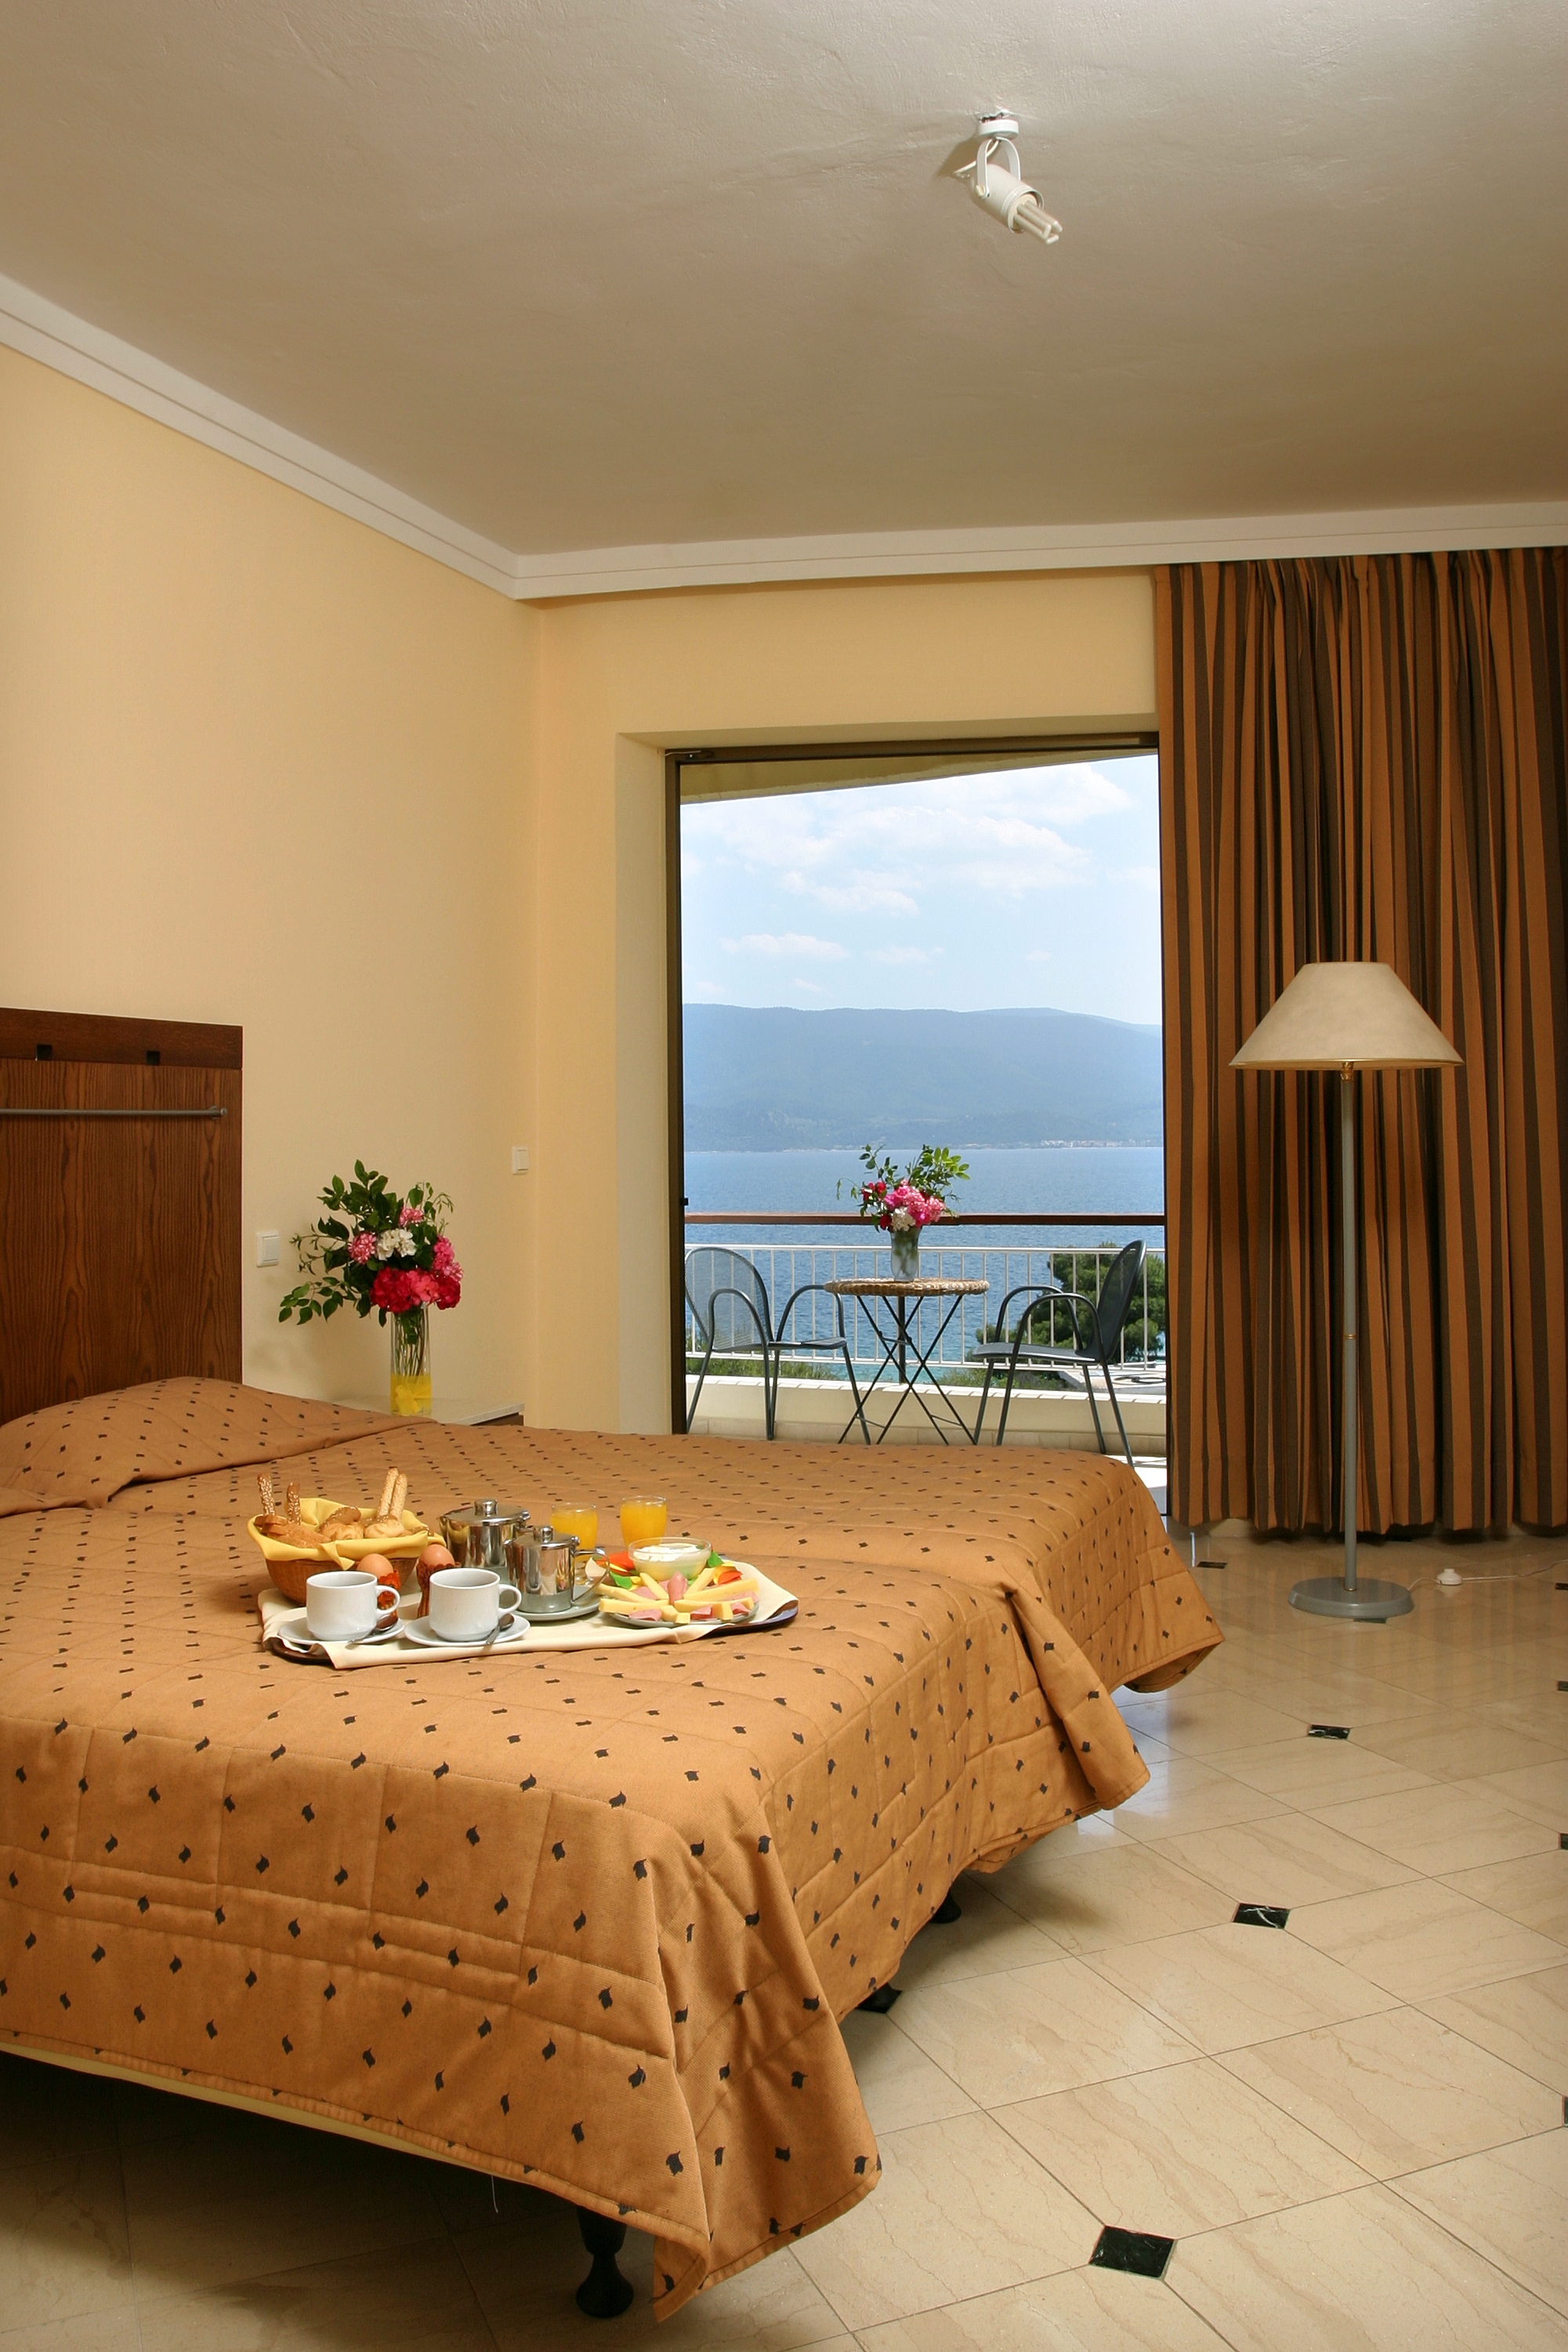 Hotel Bedroom: Romantic Holidays In Greece